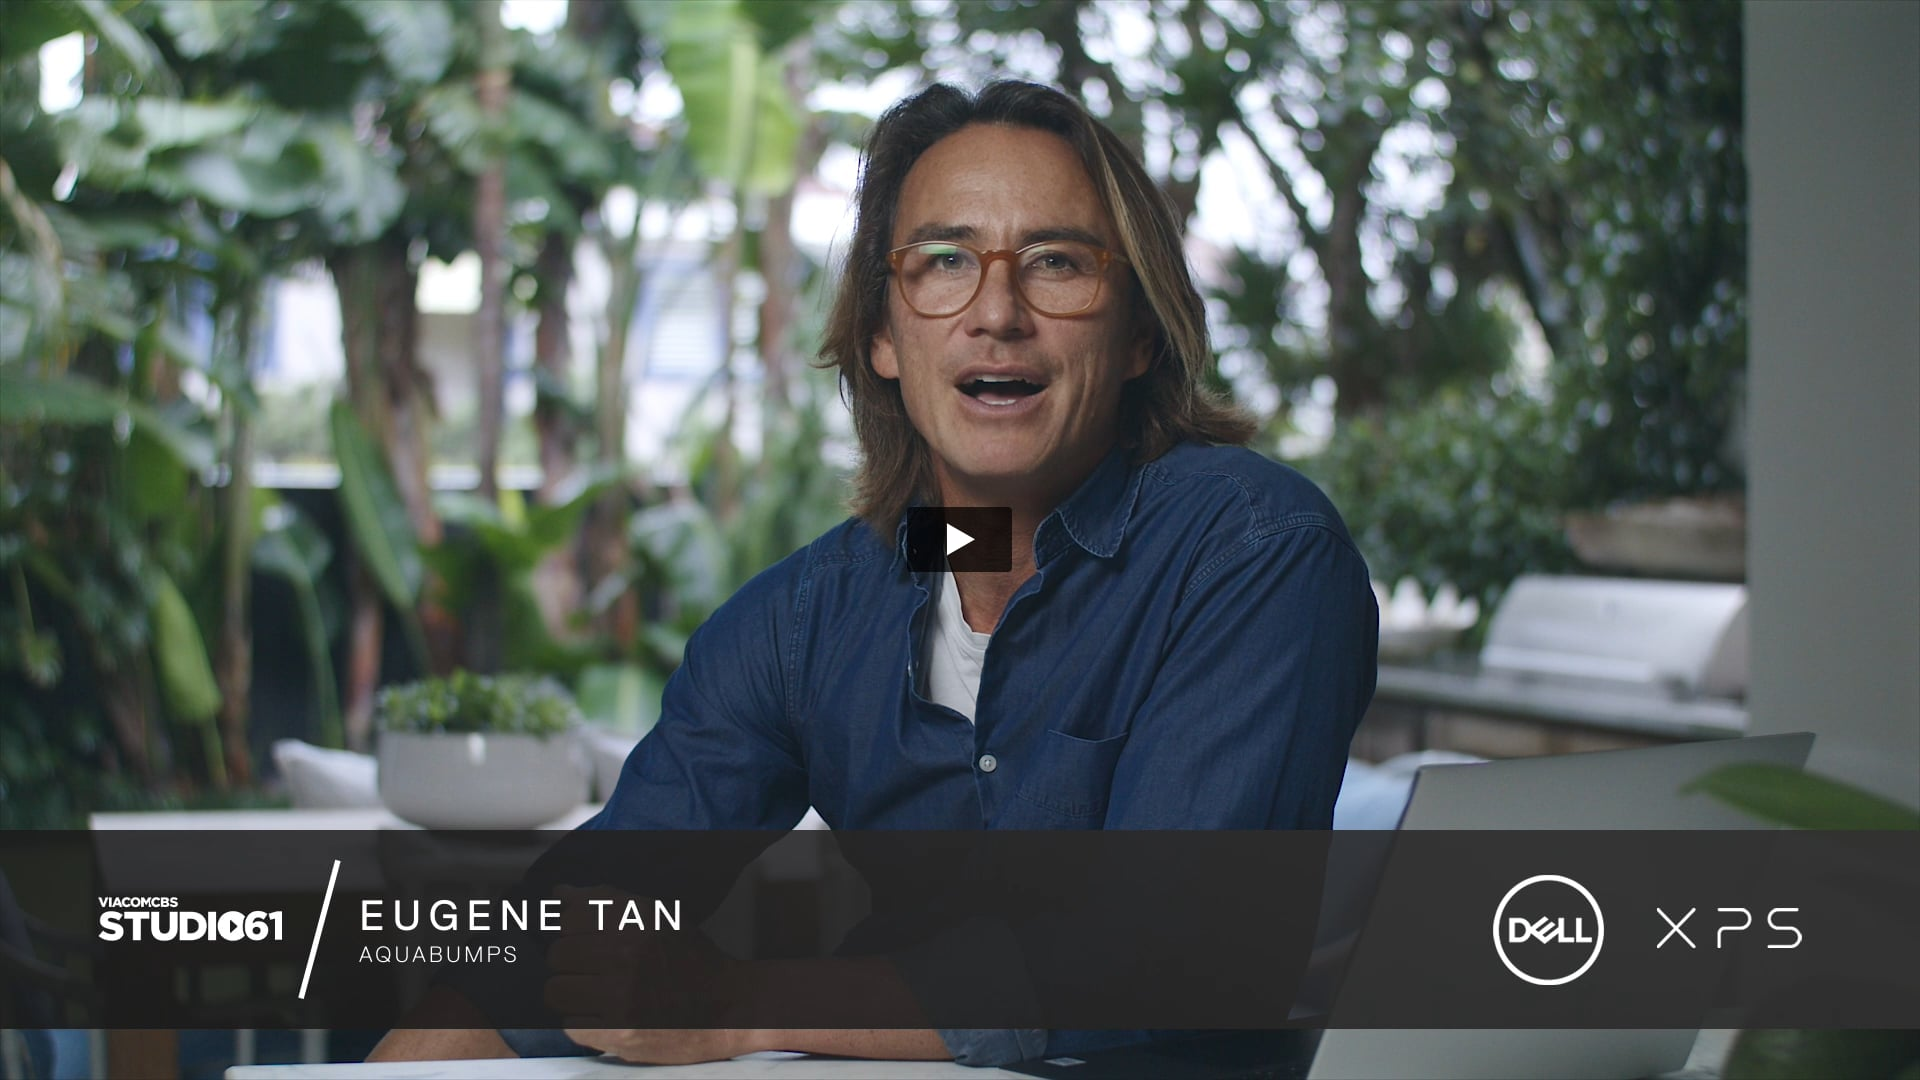 Dell XPS Creator Series: Eugene Tan on the marriage of tech and photography